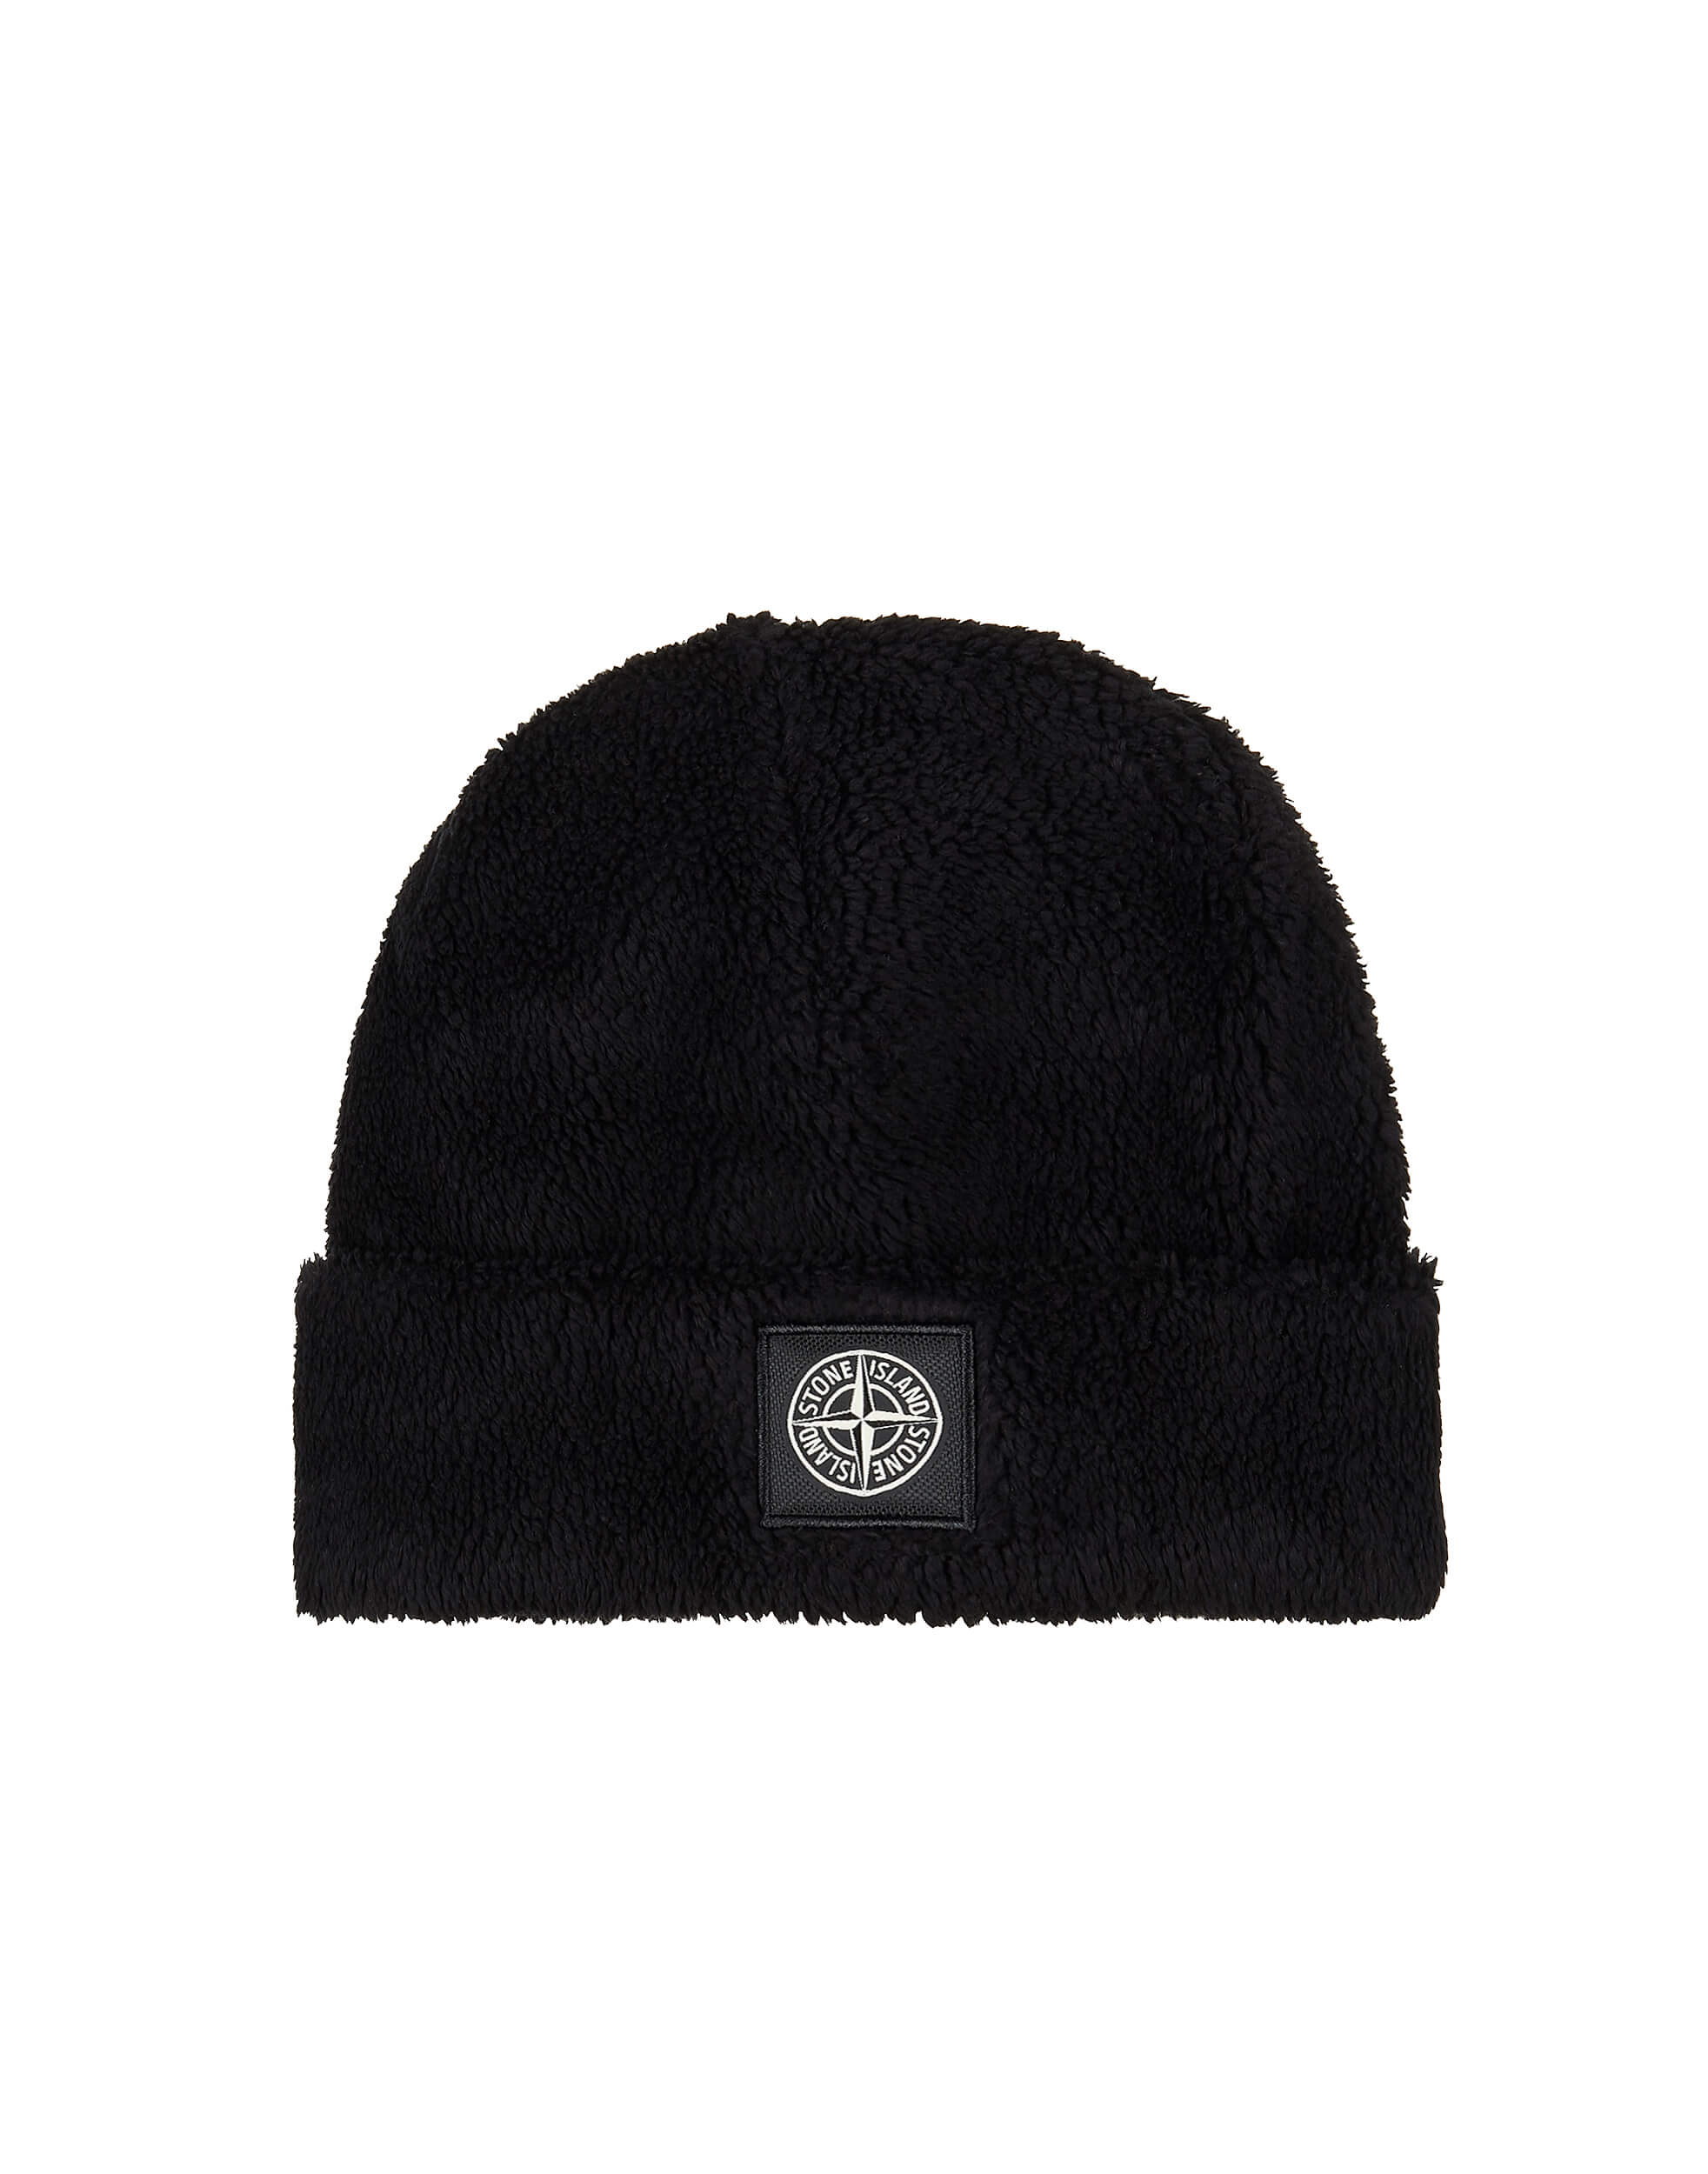 99677 Hat in Black